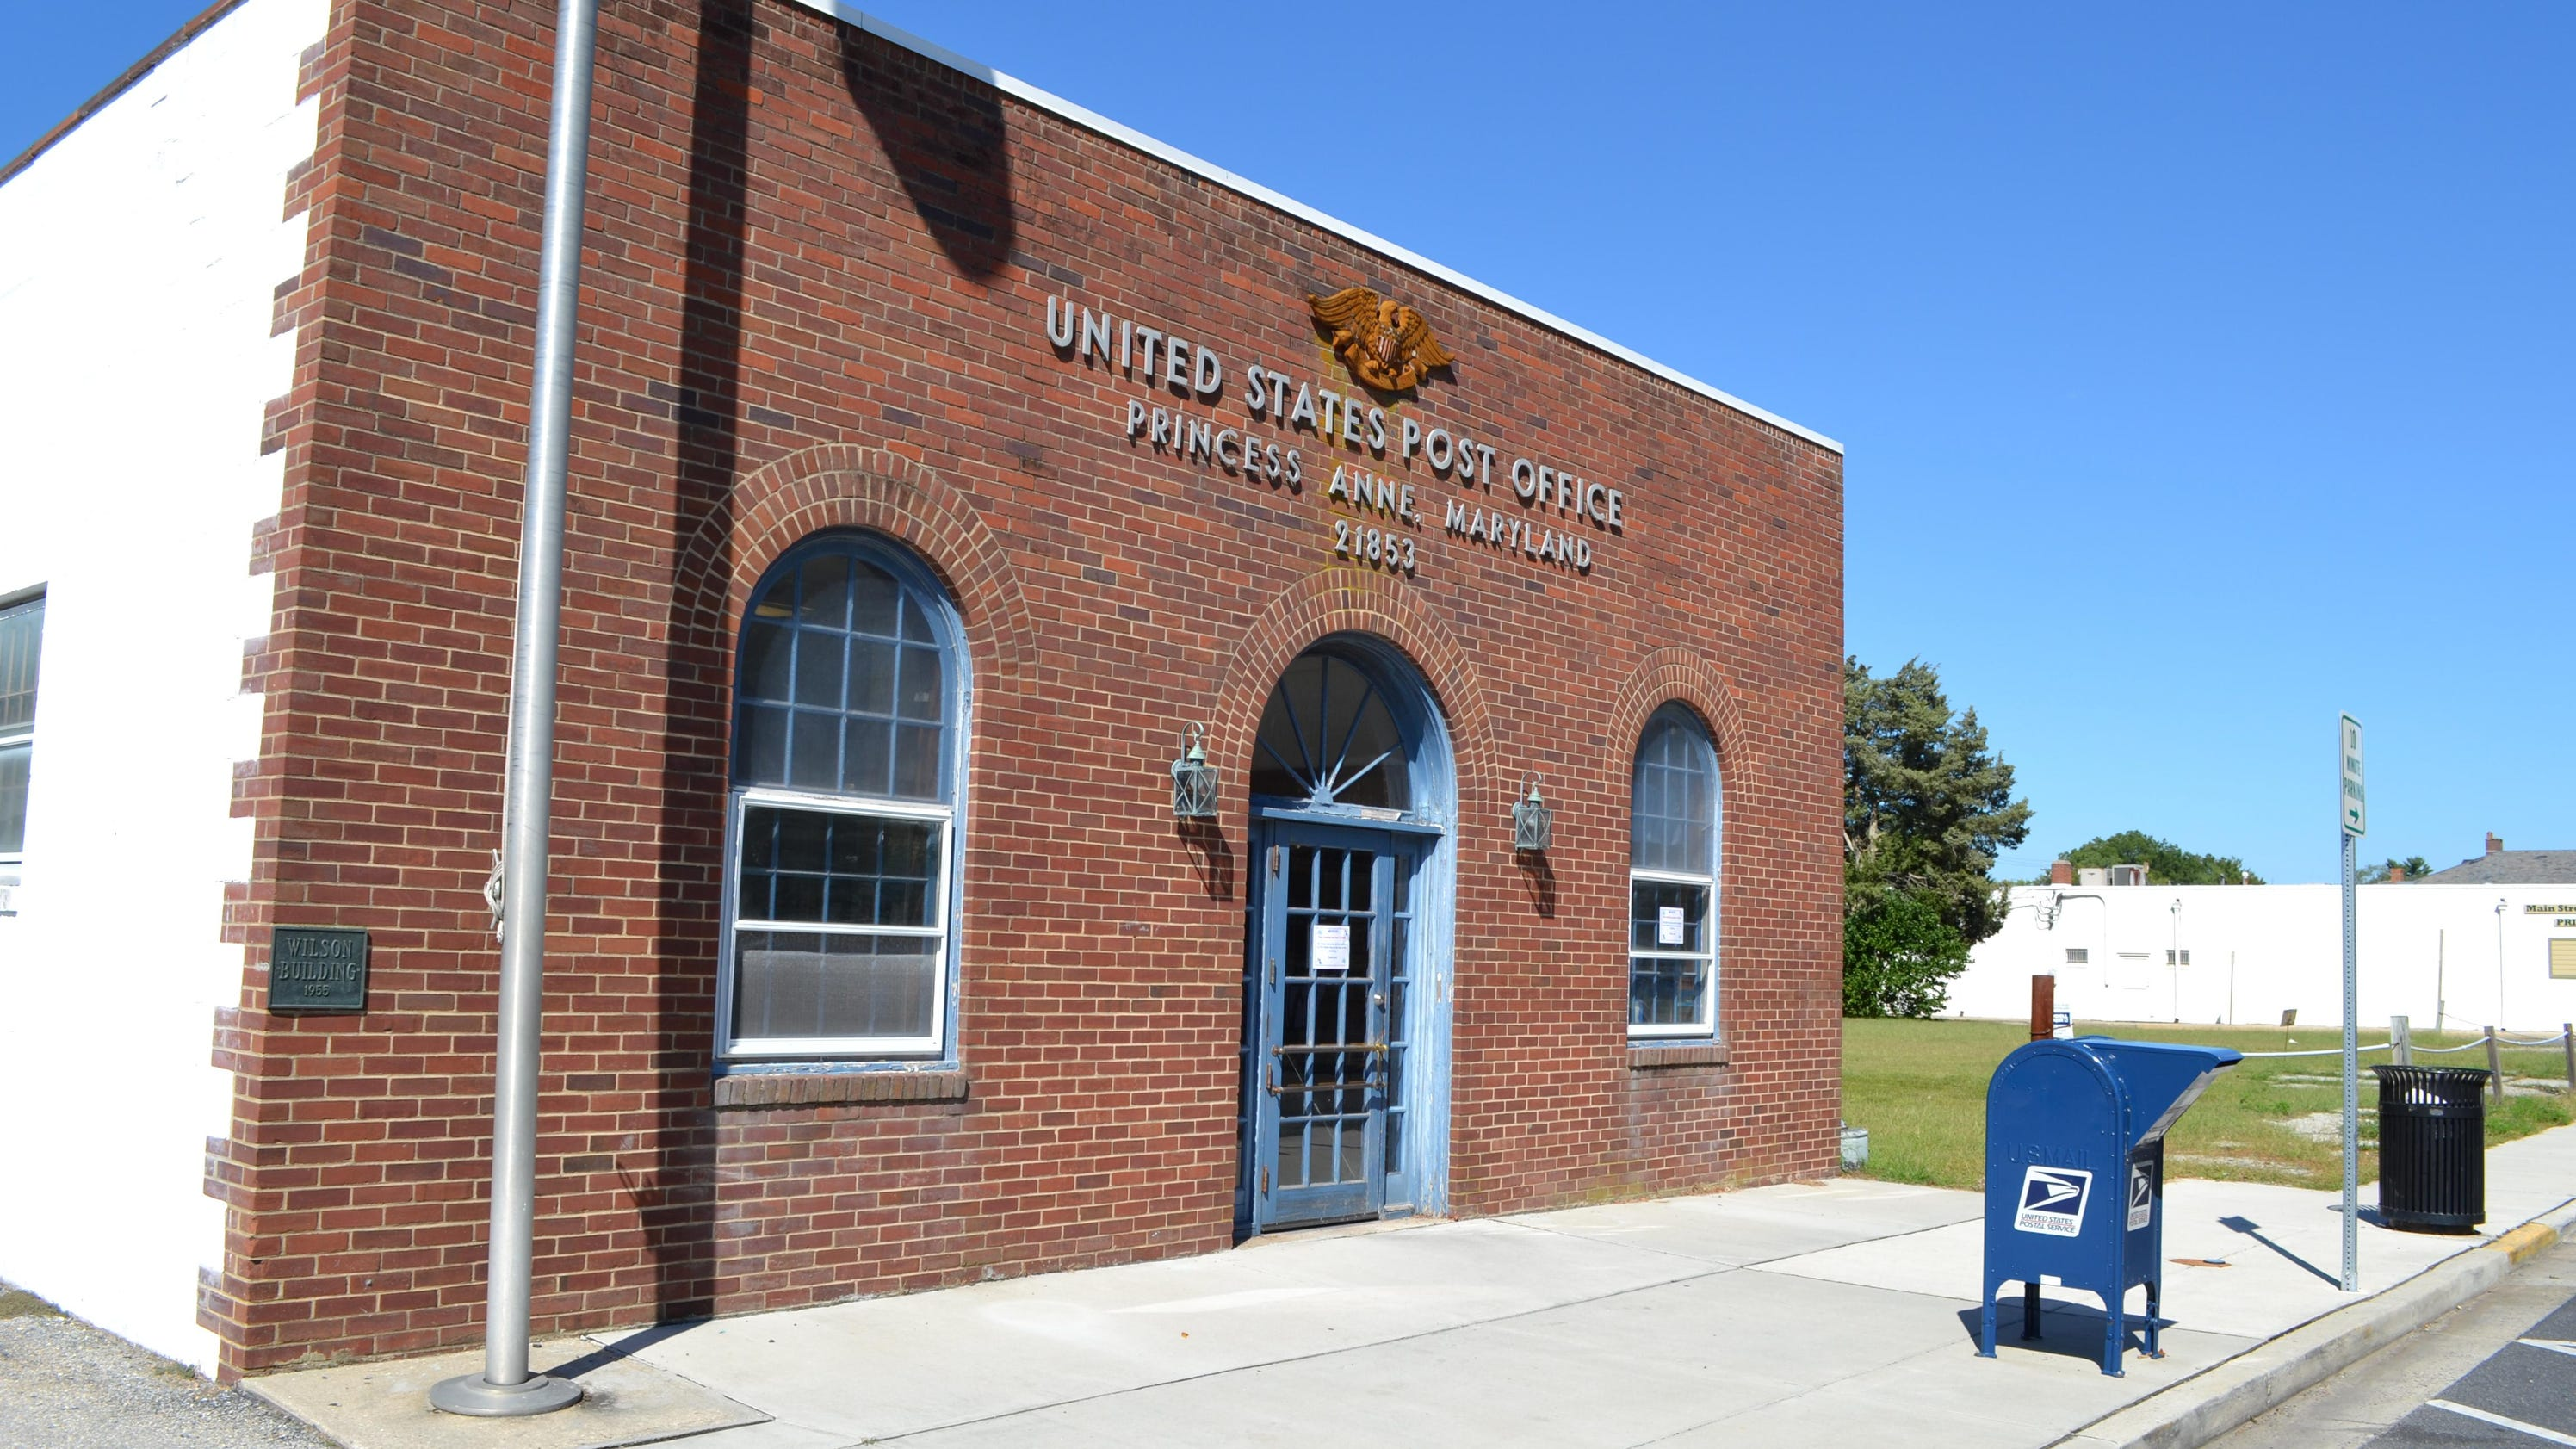 USPS Mold causes Princess Anne post office closing